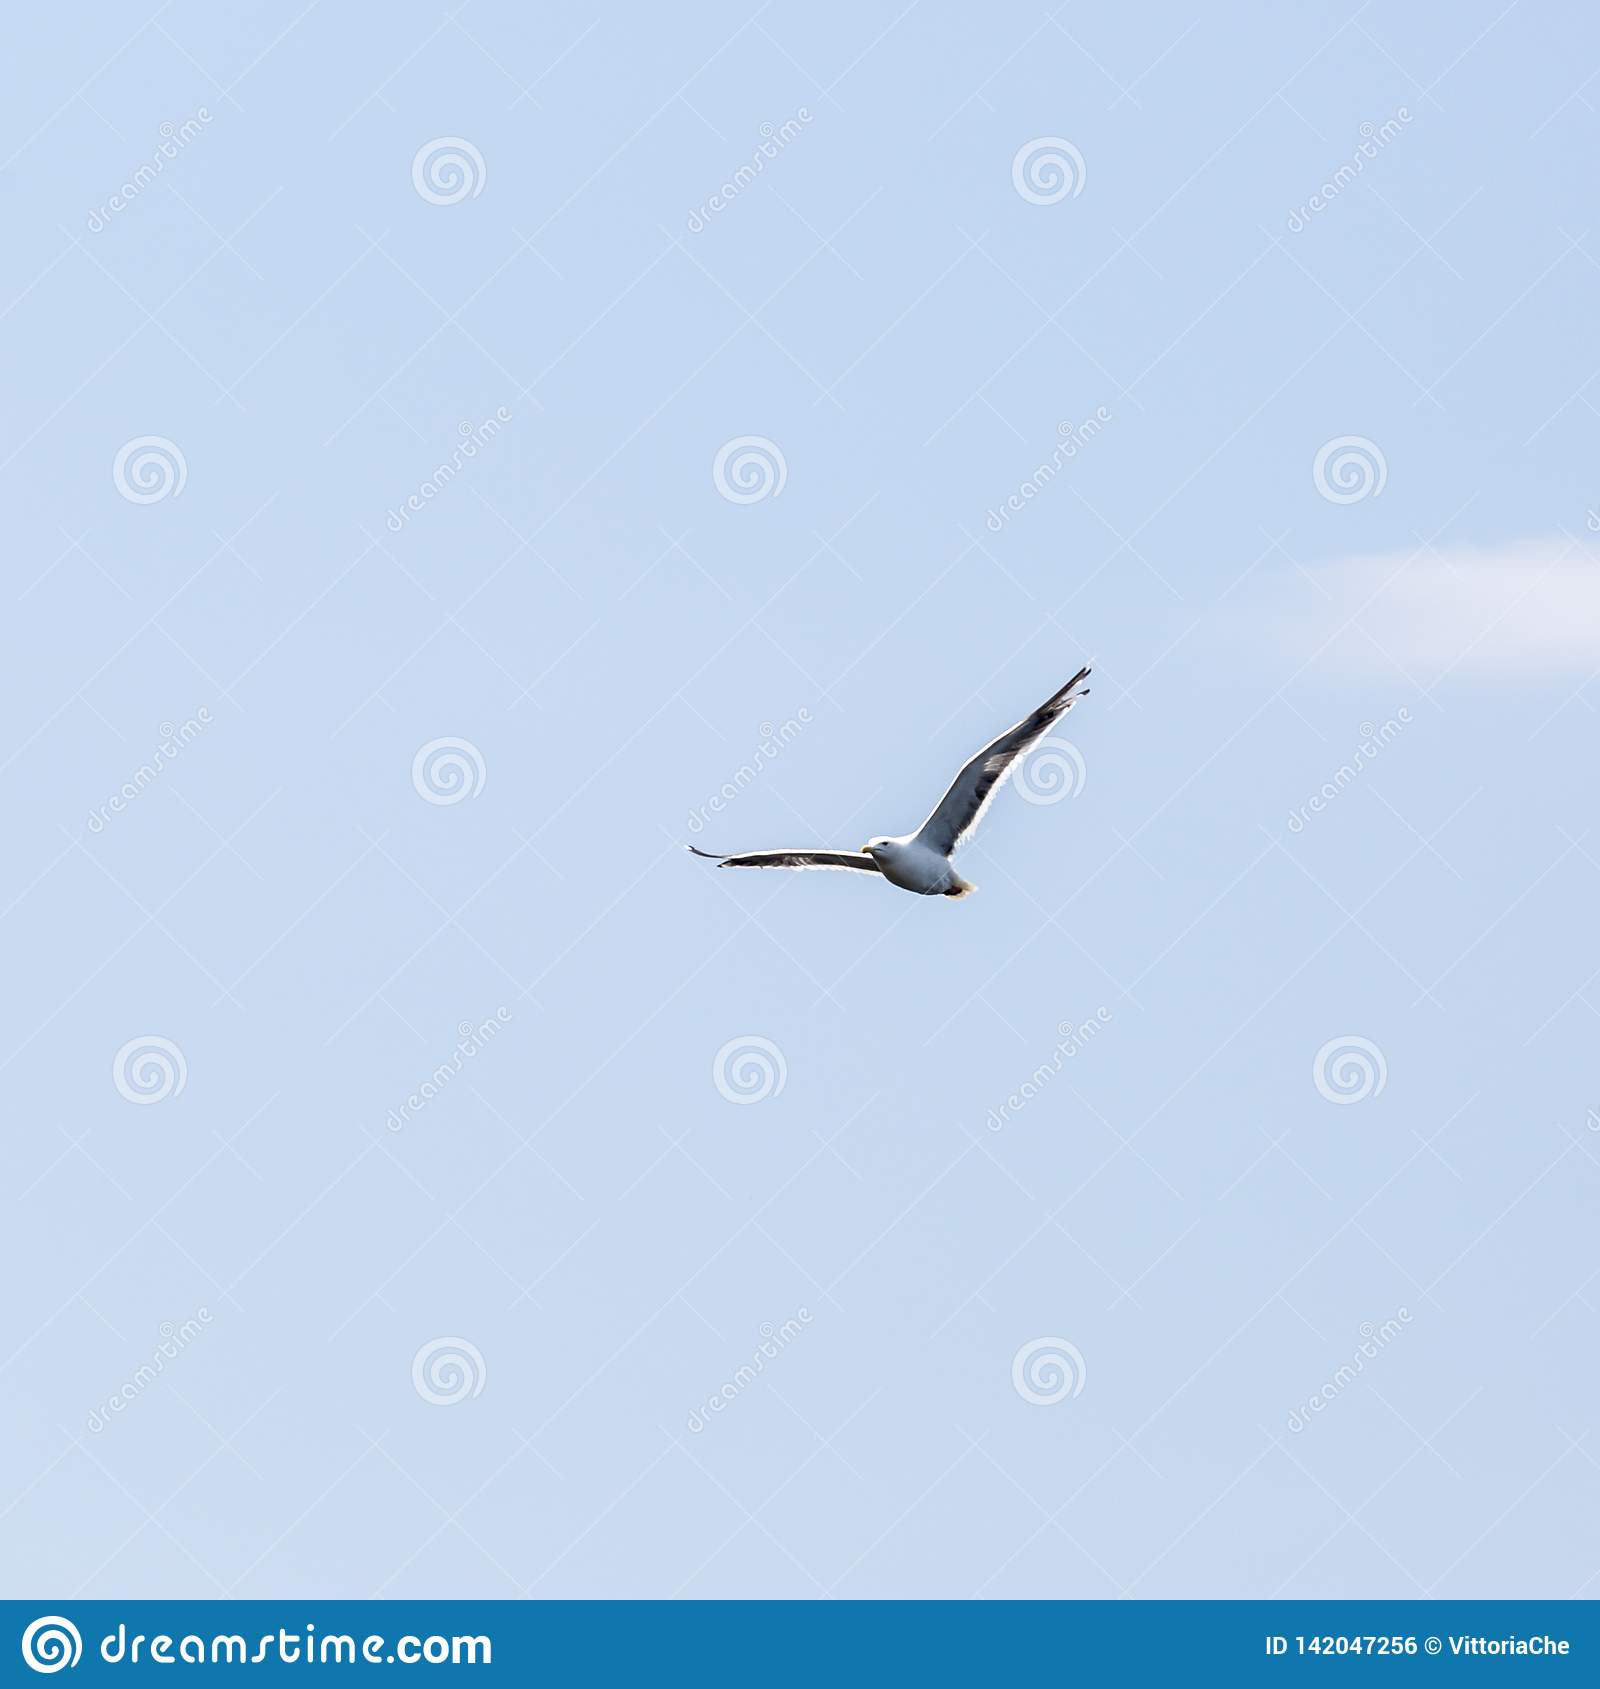 Loneliness Freedom Seagull Flying In The Blue Sky Over The